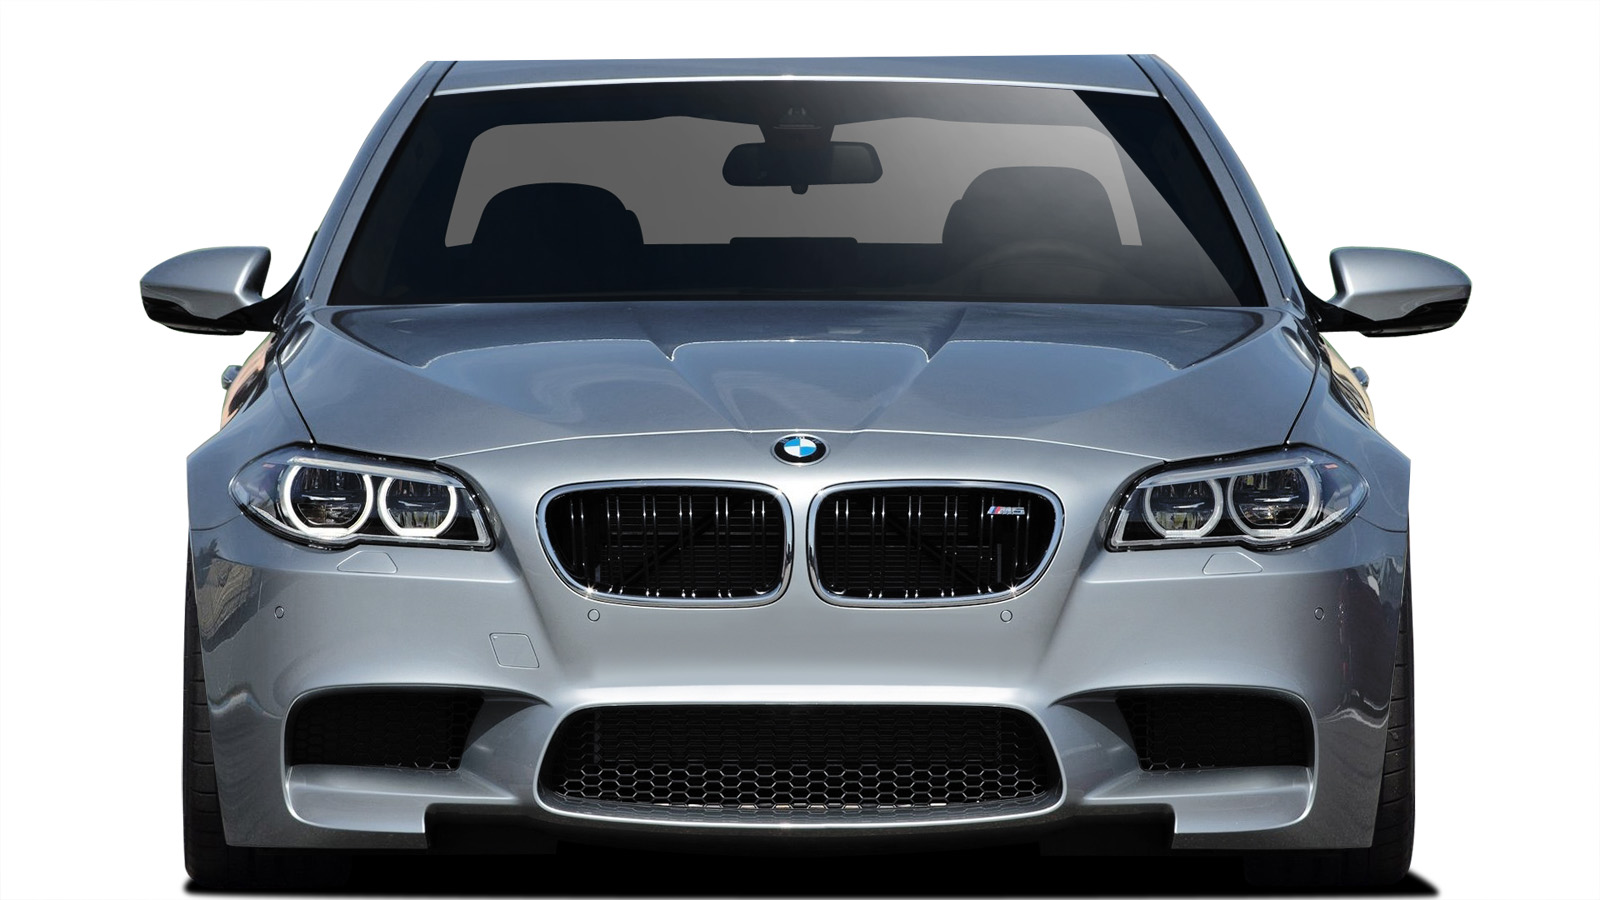 2015 BMW 5 Series ALL - Polypropylene Front Bumper Bodykit - BMW 5 Series F10 Vaero M5 Look Conversion Front Bumper Cover ( with PDC , with Washer , w